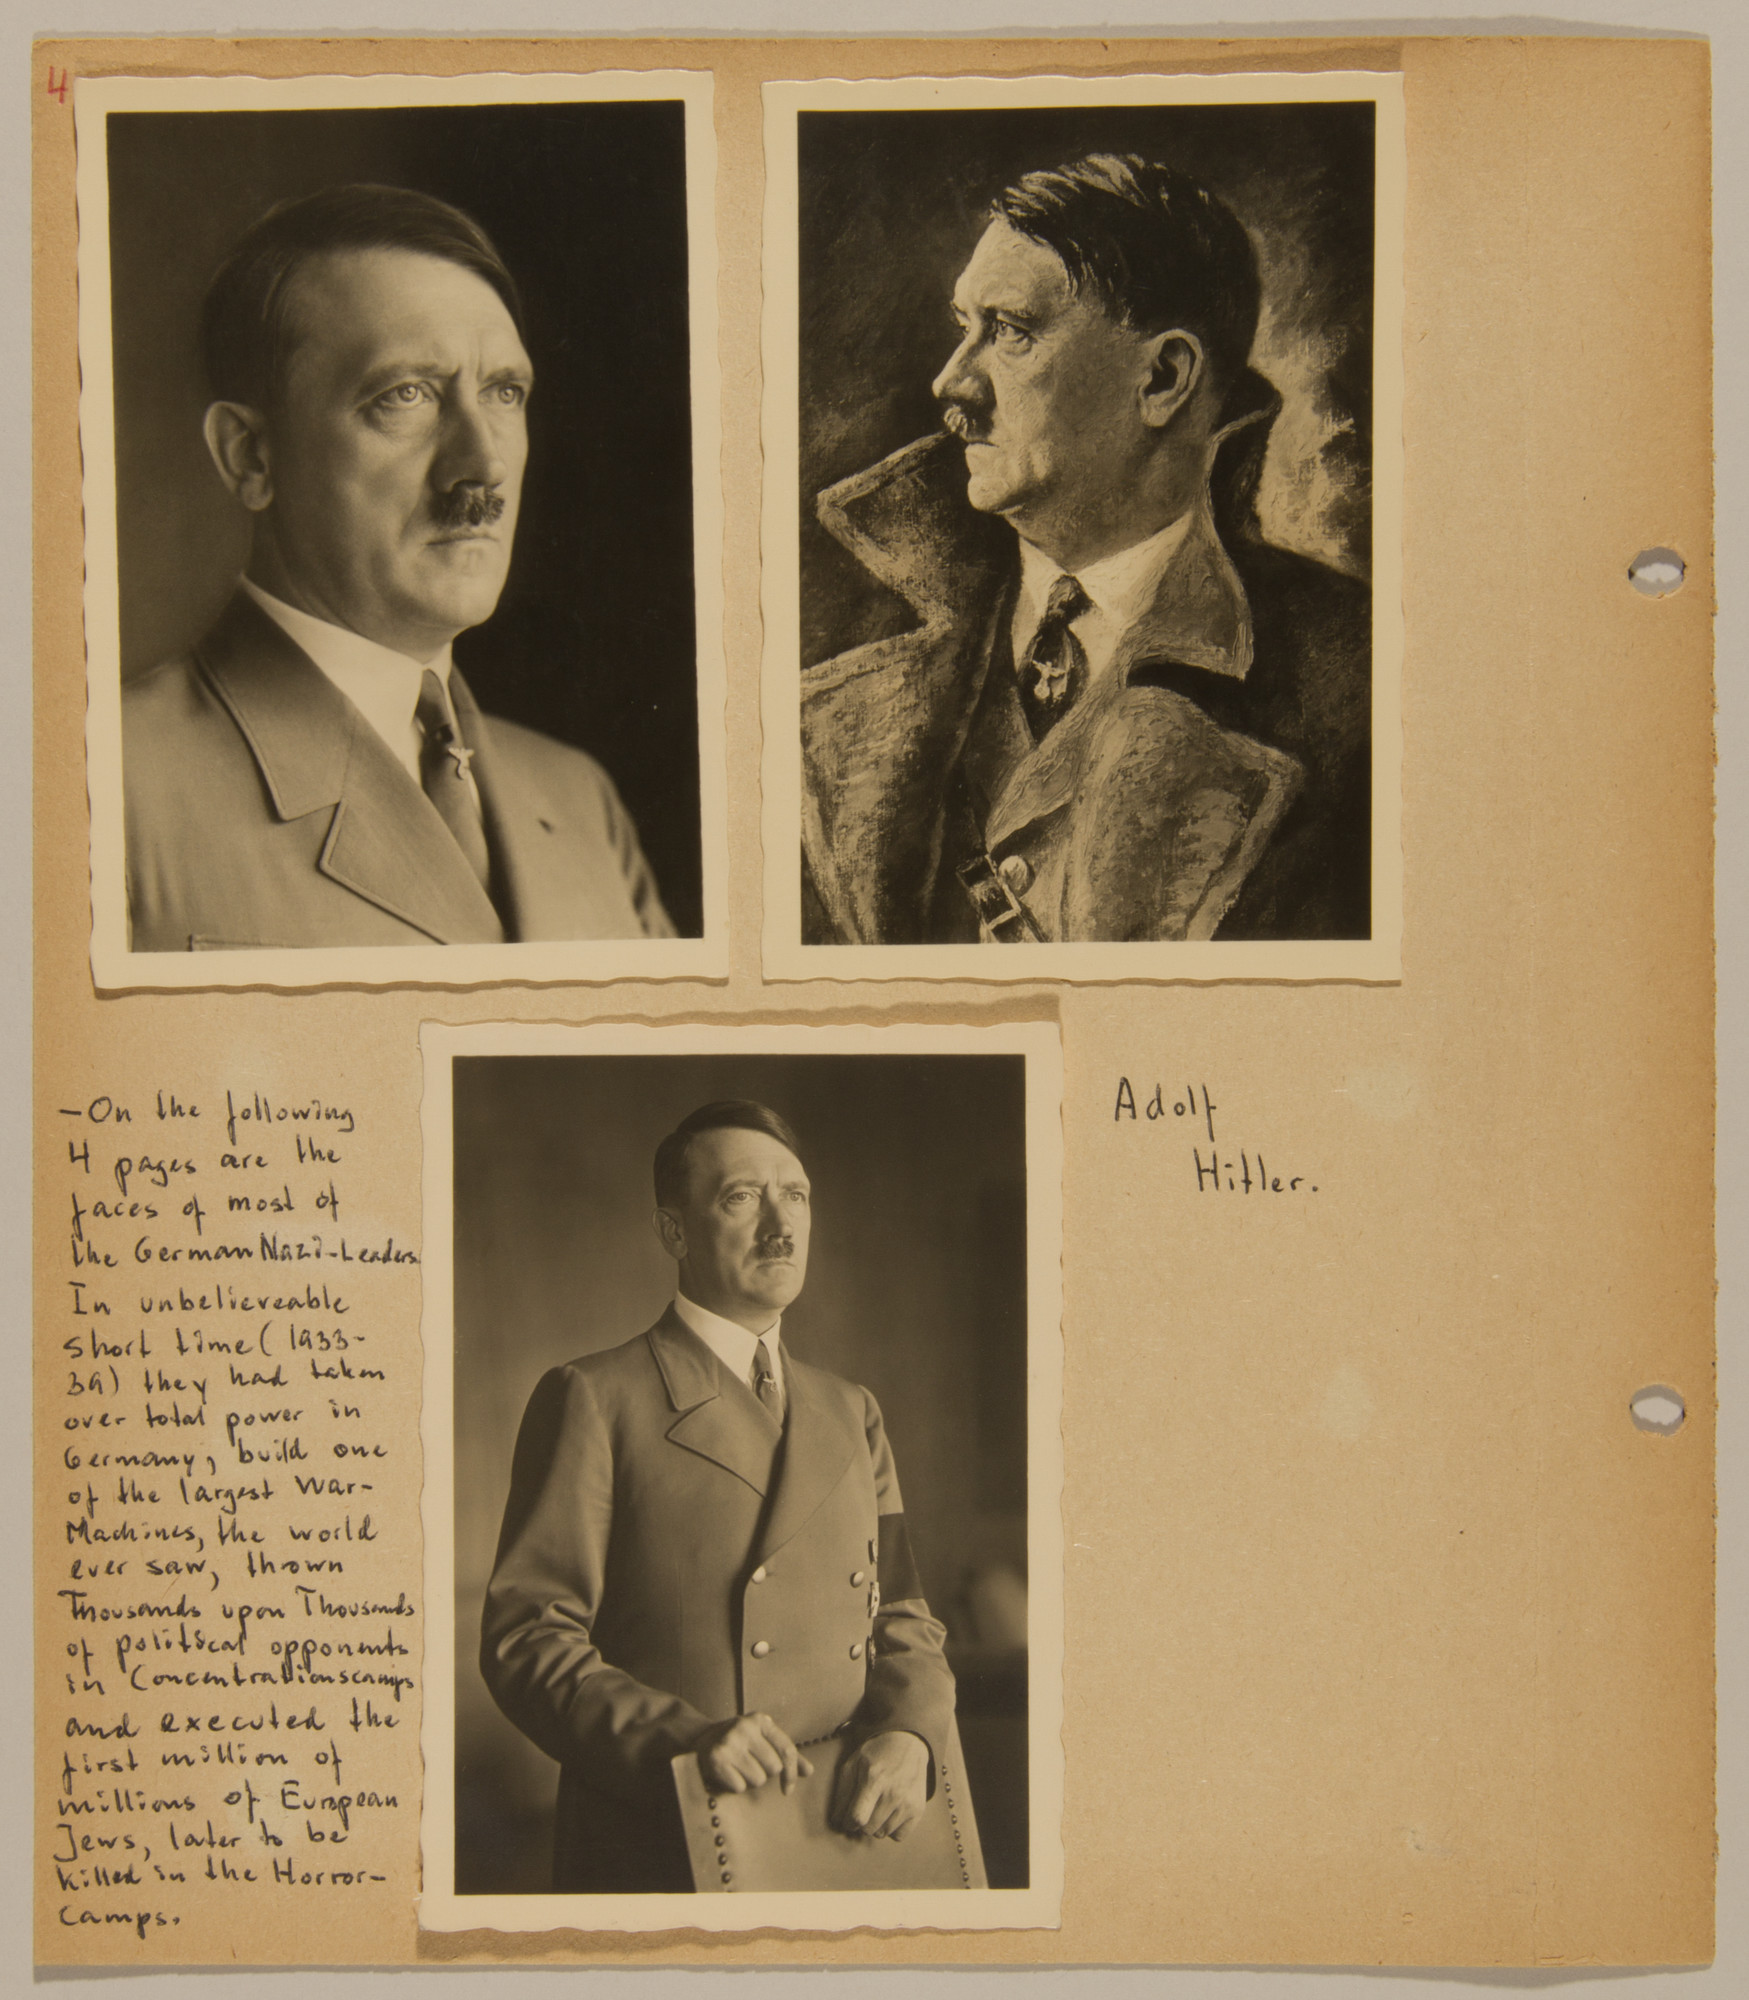 Page from volume four of a set of scrapbooks compiled by Bjorn Sibbern, a Danish policeman and resistance member, documenting the German occupation of Denmark.  This page contains three photographs of Hitler.